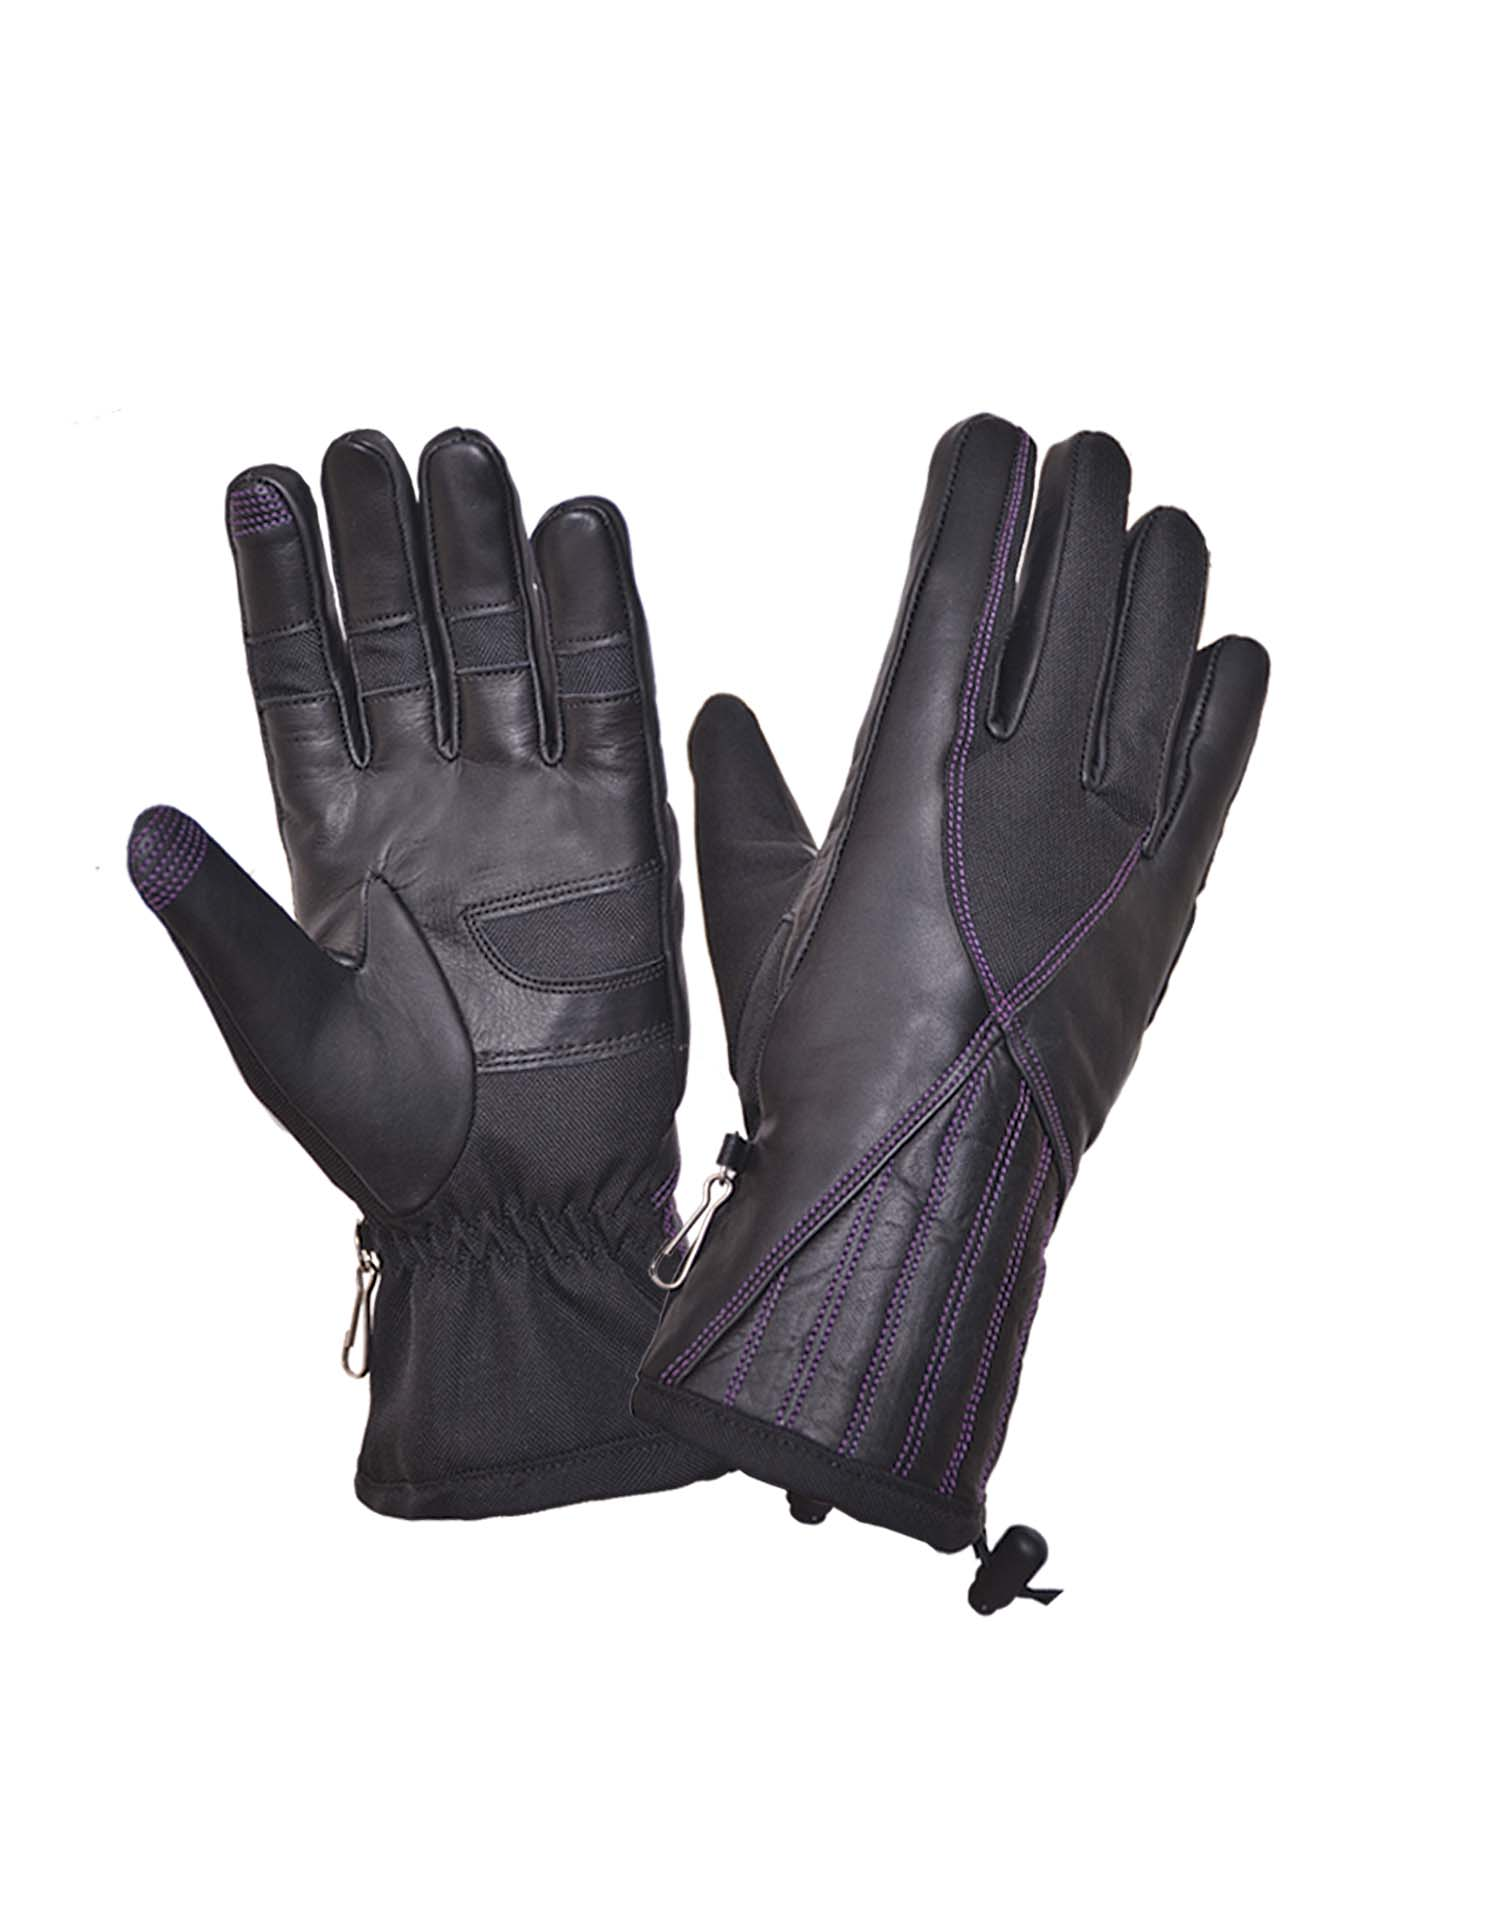 Ladies Black Full-Finger Gloves With Purple Stitching (Size: Large)